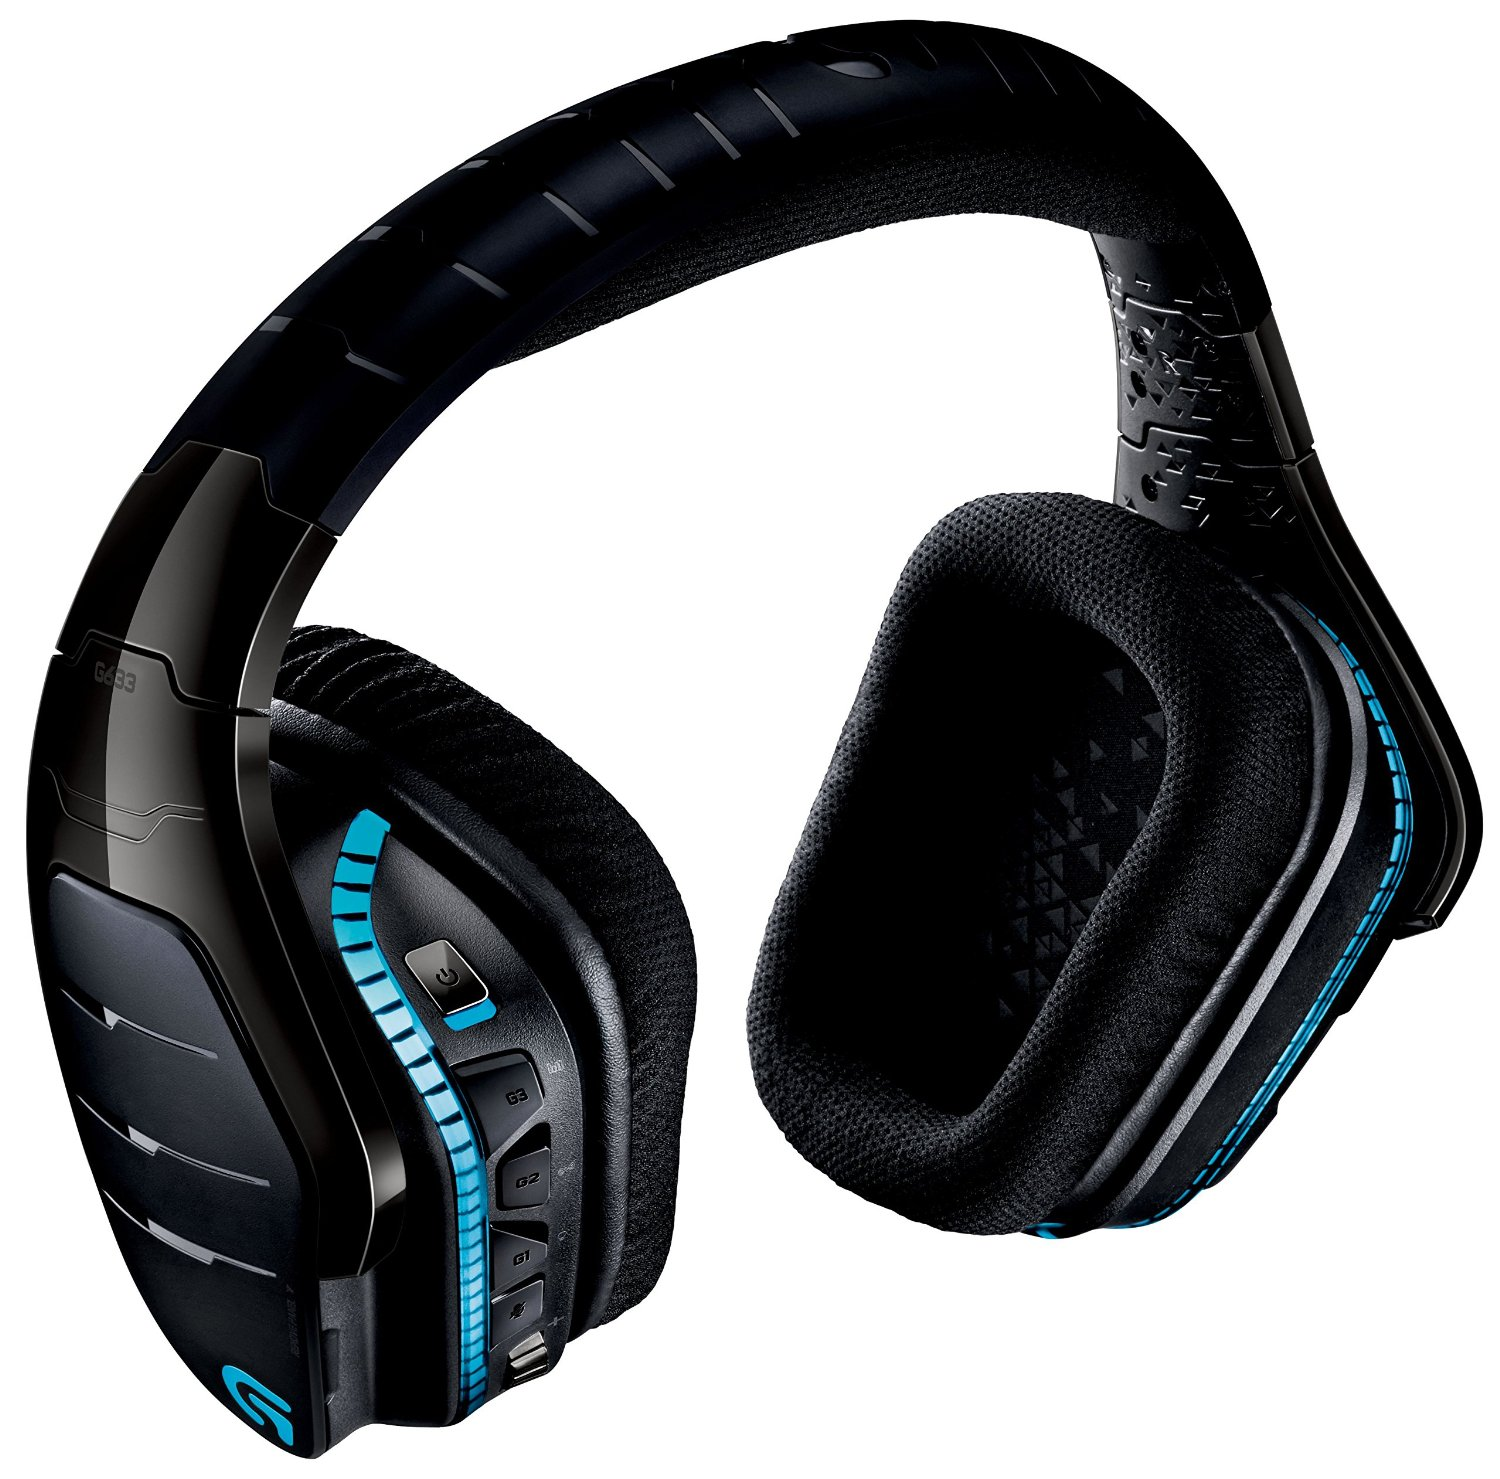 a5d52ba3ea1 Logitech G933 Artemis Spectrum Wireless 7.1 Surround Gaming Headset-in  Mouse Pads from Computer & Office on Aliexpress.com | Alibaba Group